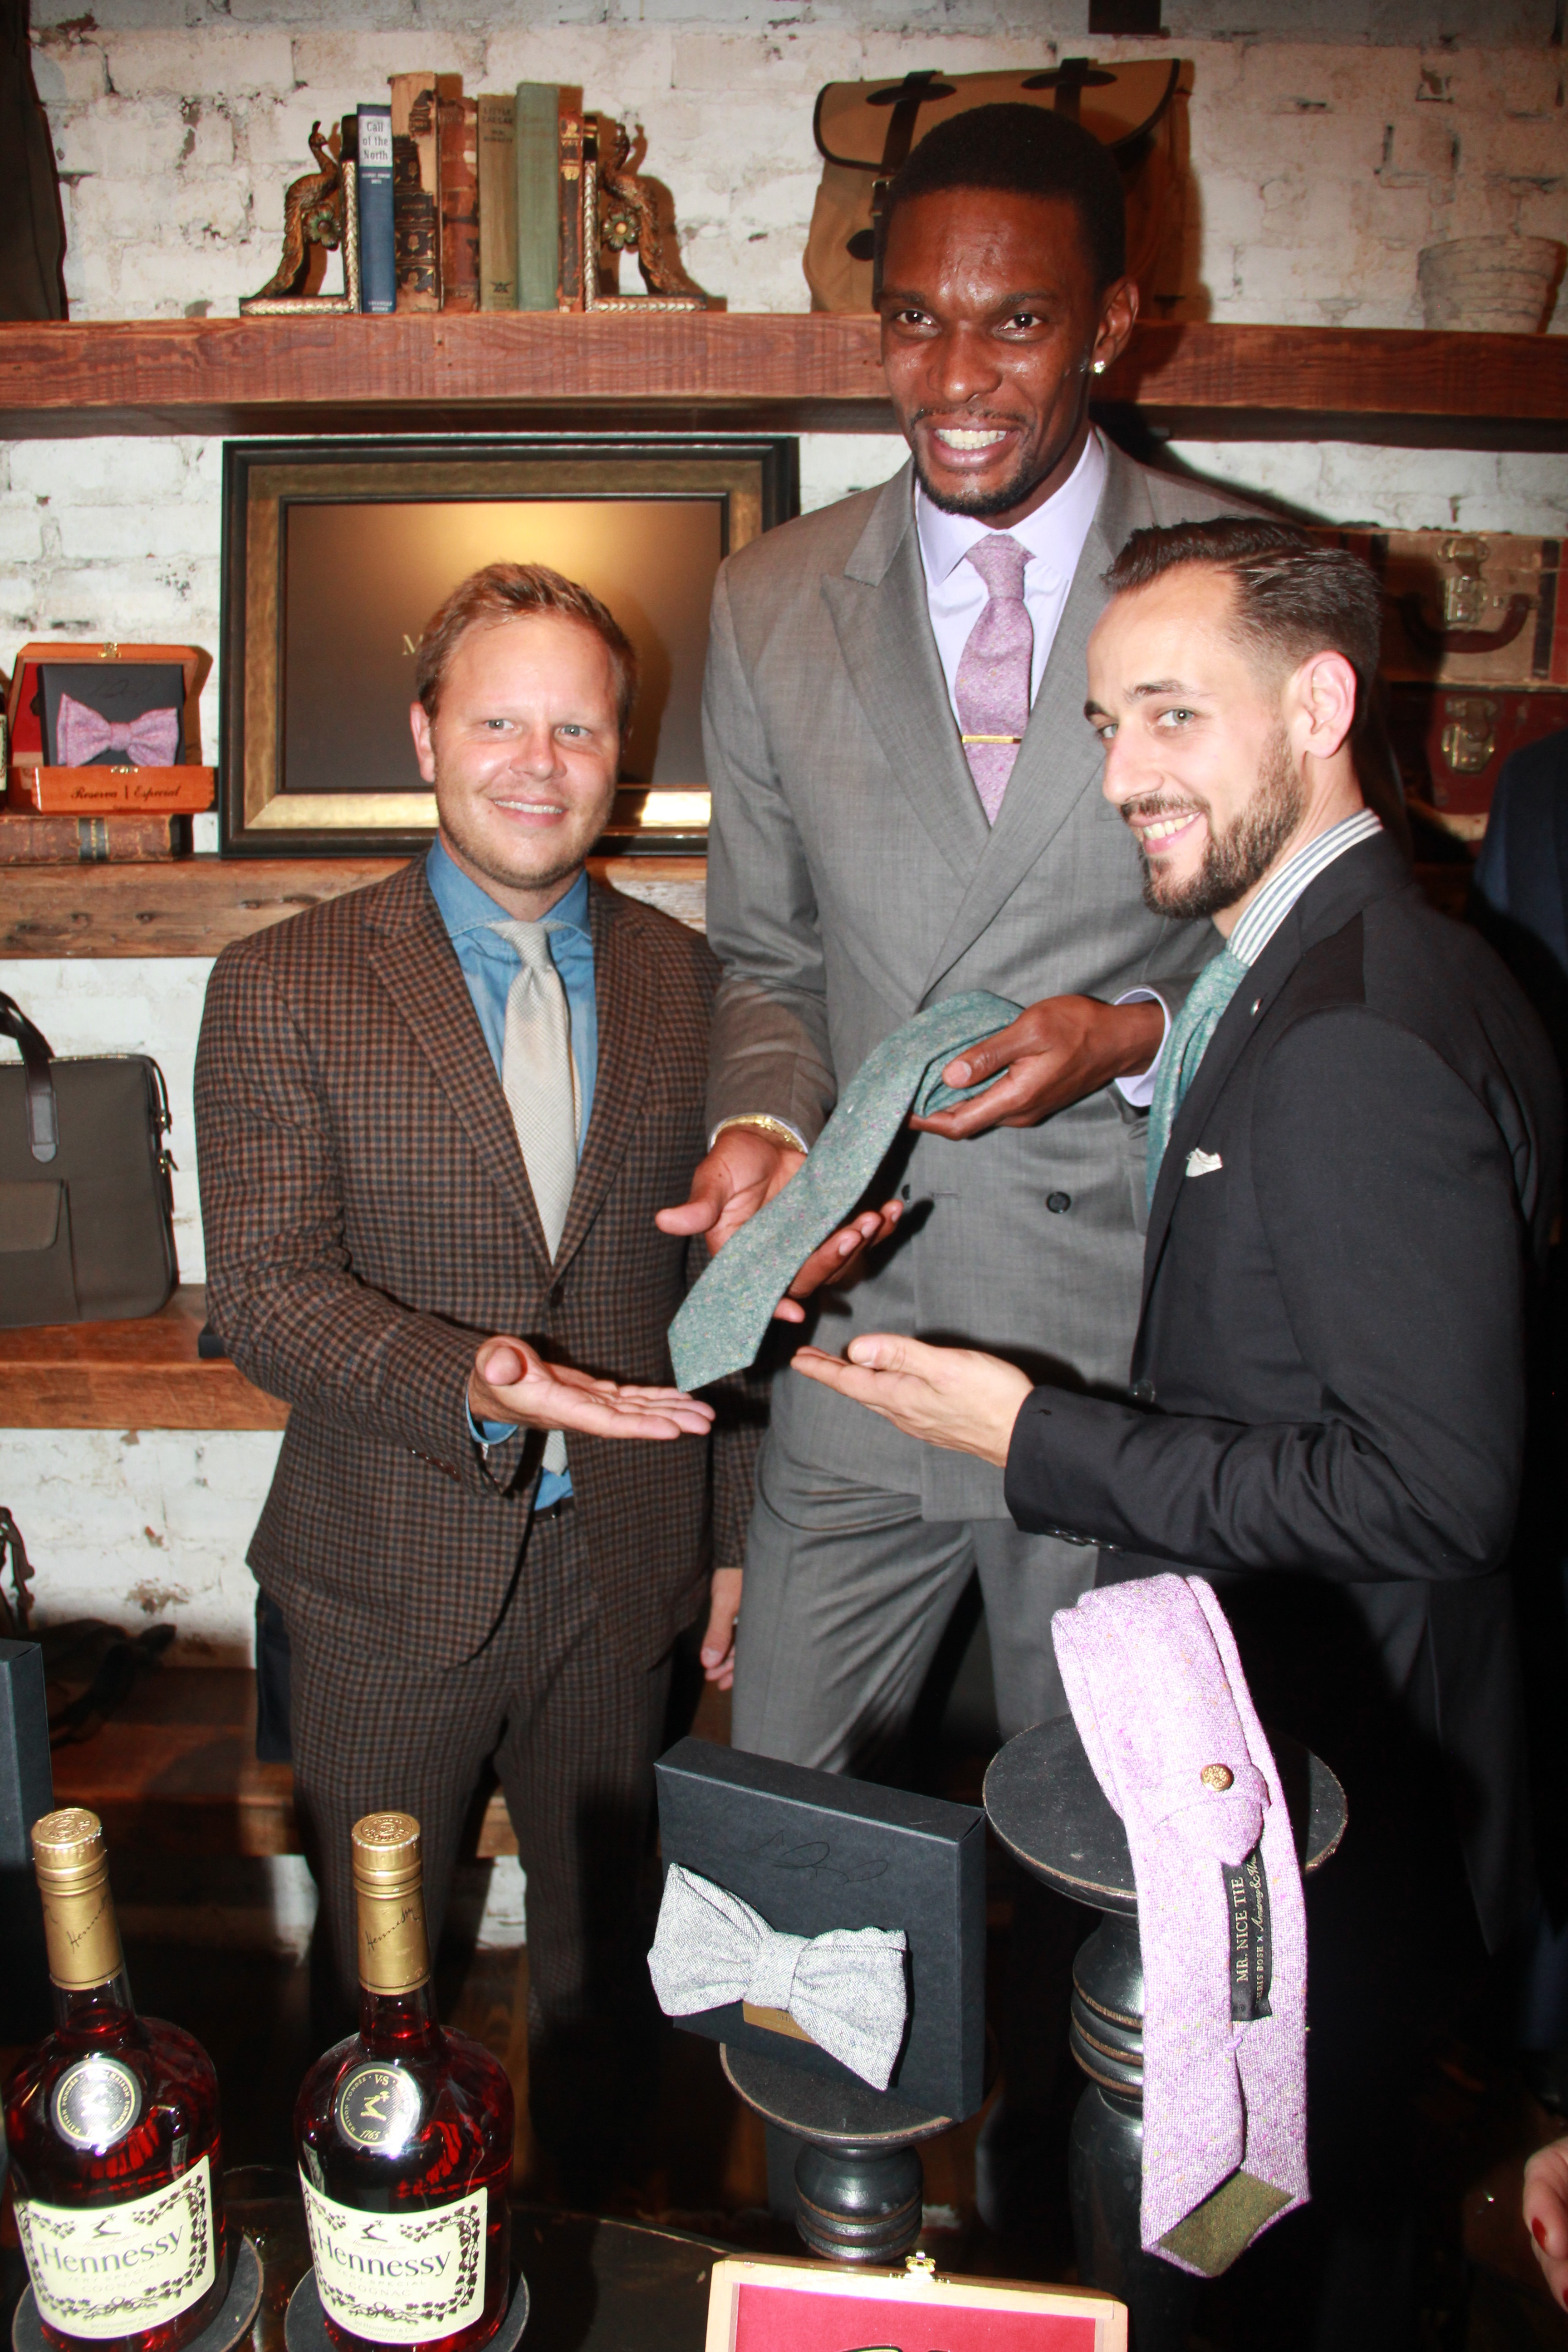 Chris-Bosh-Mr-Nice-tie-new-york-fashion-week-debut-armstrong-and-wilson-2